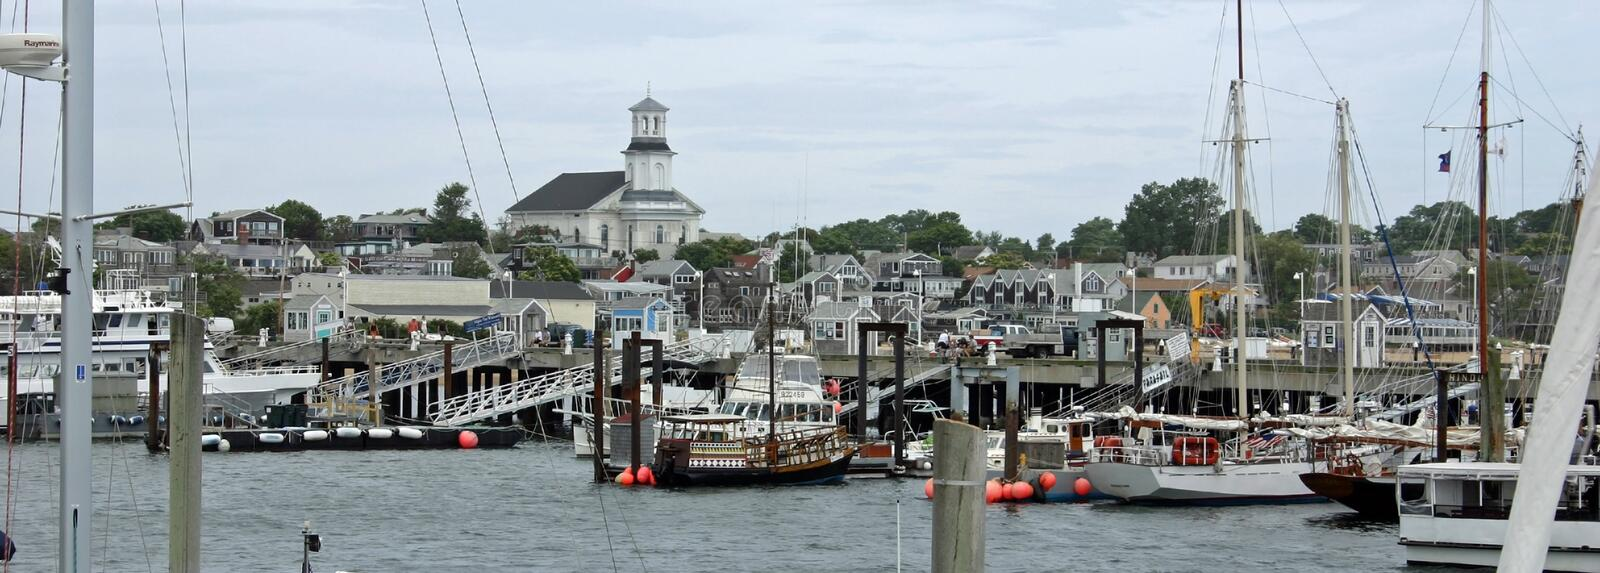 Pronvincetown Harbor royalty free stock images